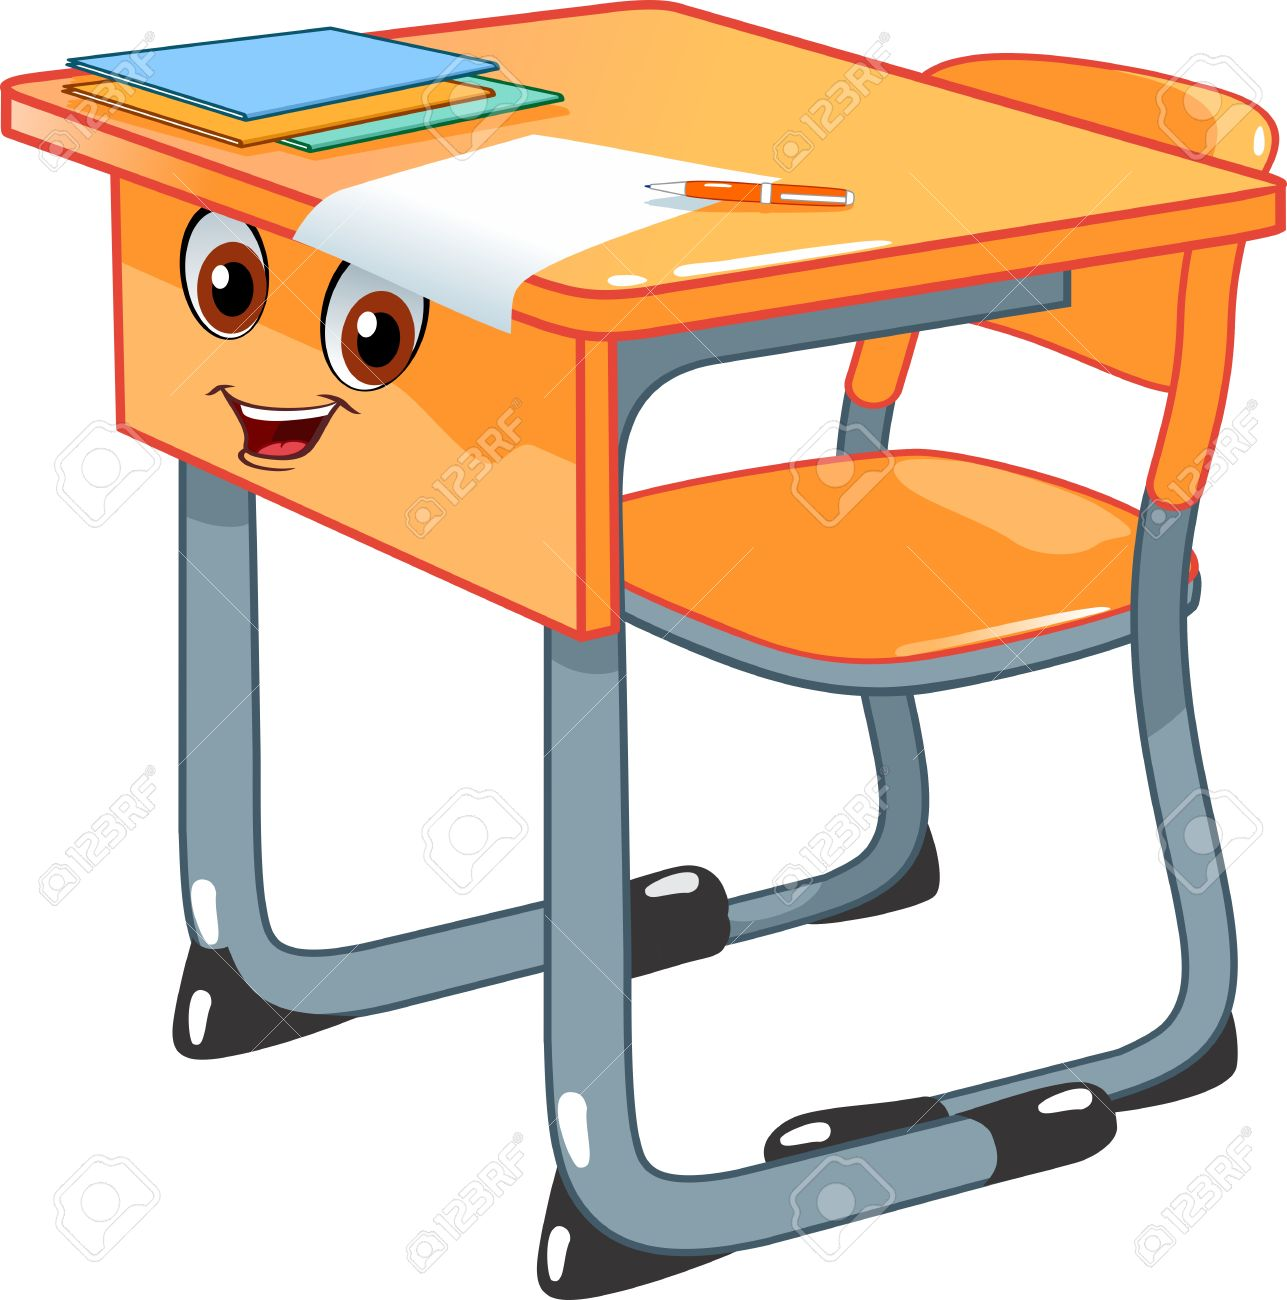 school desk and a chair royalty free cliparts vectors and stock rh 123rf com Teacher Desk Clip Art old school desk clipart